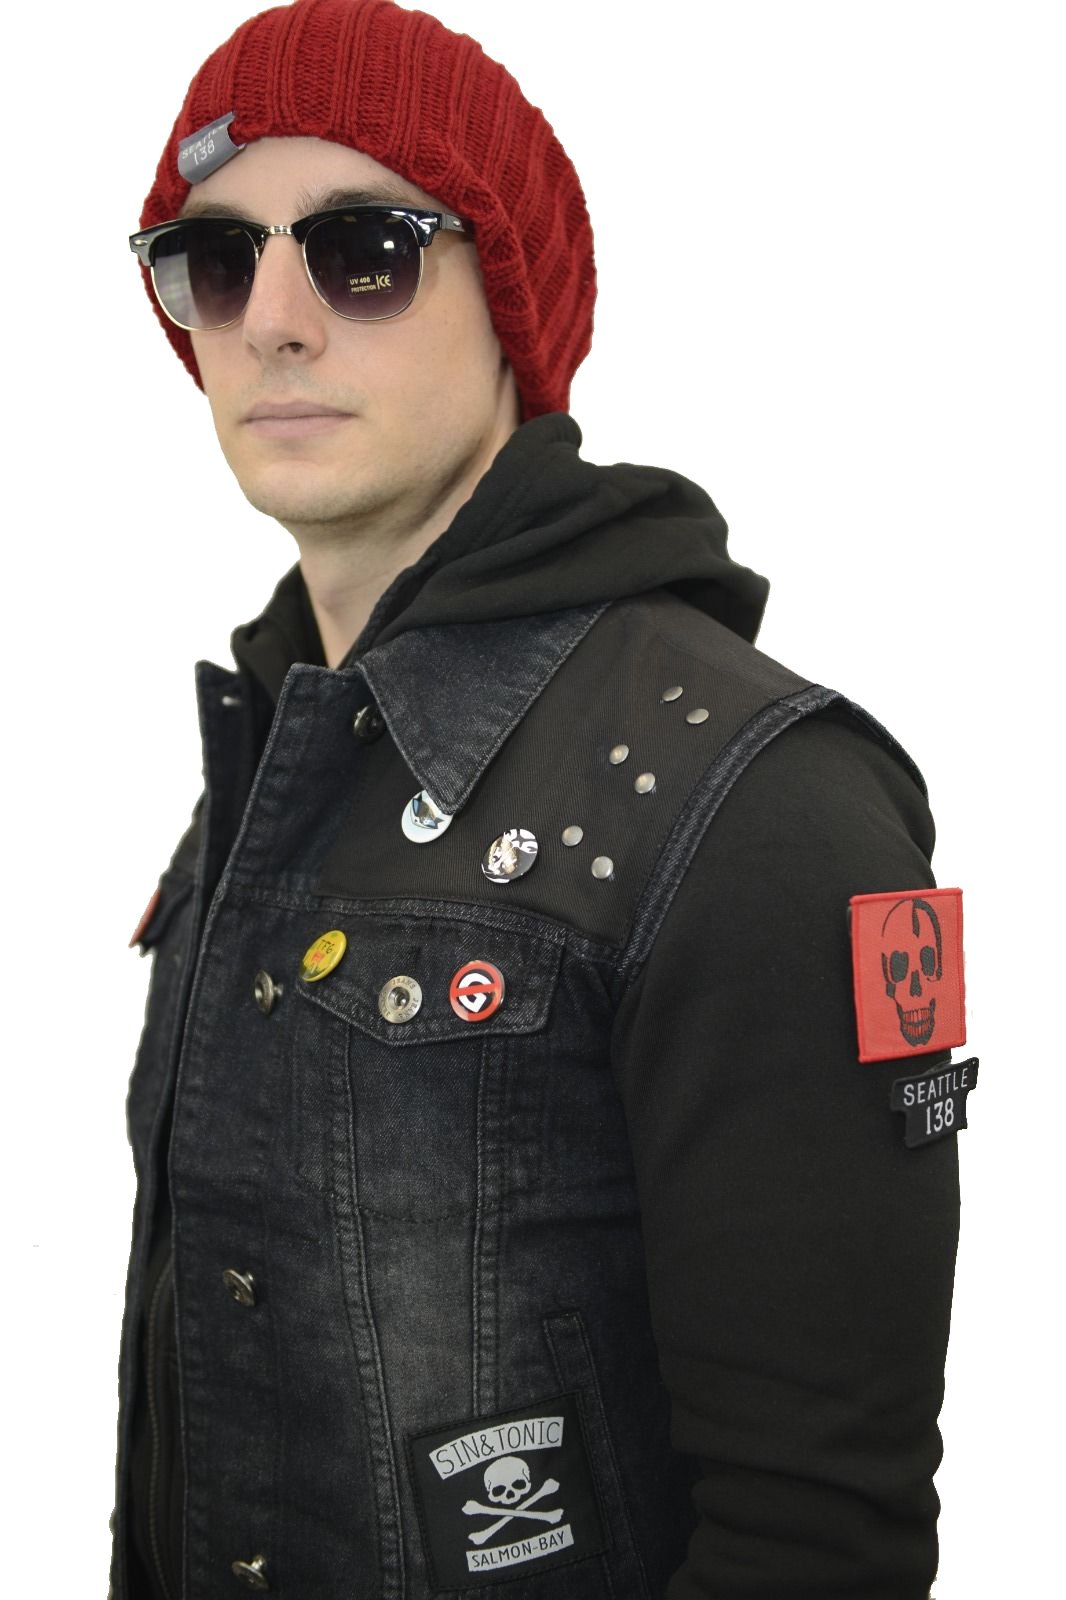 Infamous Second Son Costume Complete Jacket Vest Beanie Cap Delsin Rowe Tattoo (M) by thecostumebase